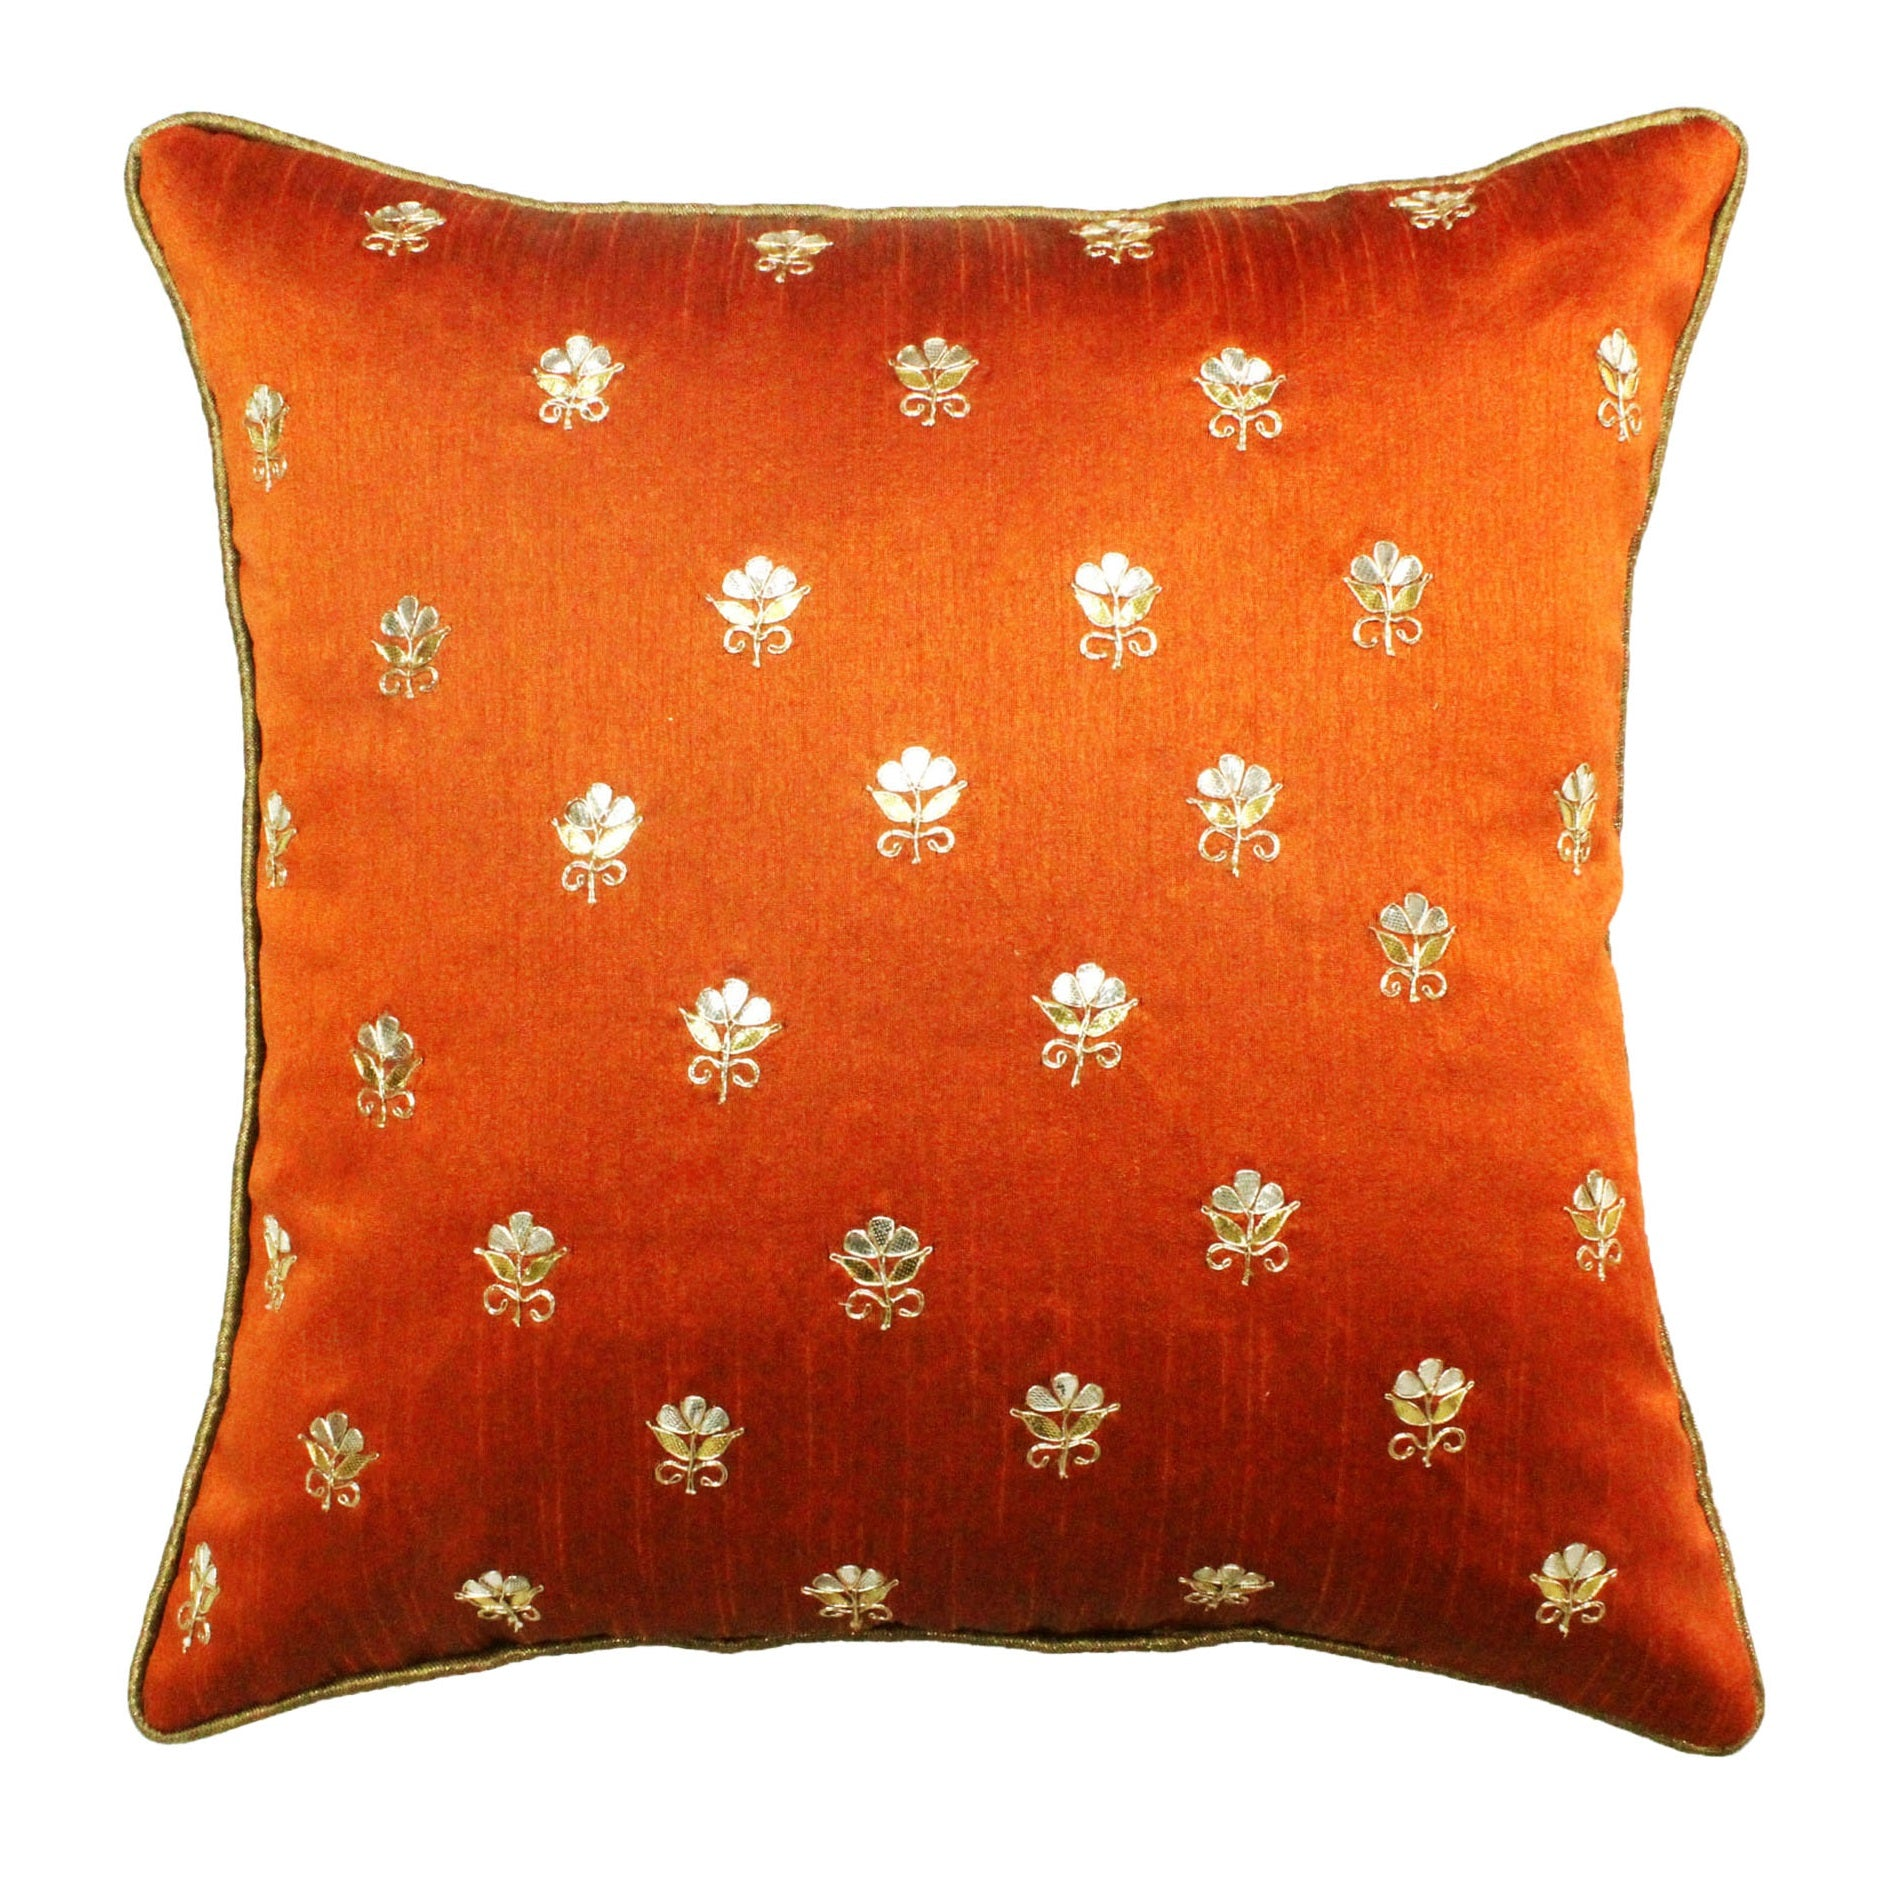 Gota Patti cushion cover - Orange - Small all over booti cushion cover - 16x16 inches - Dupioni silk